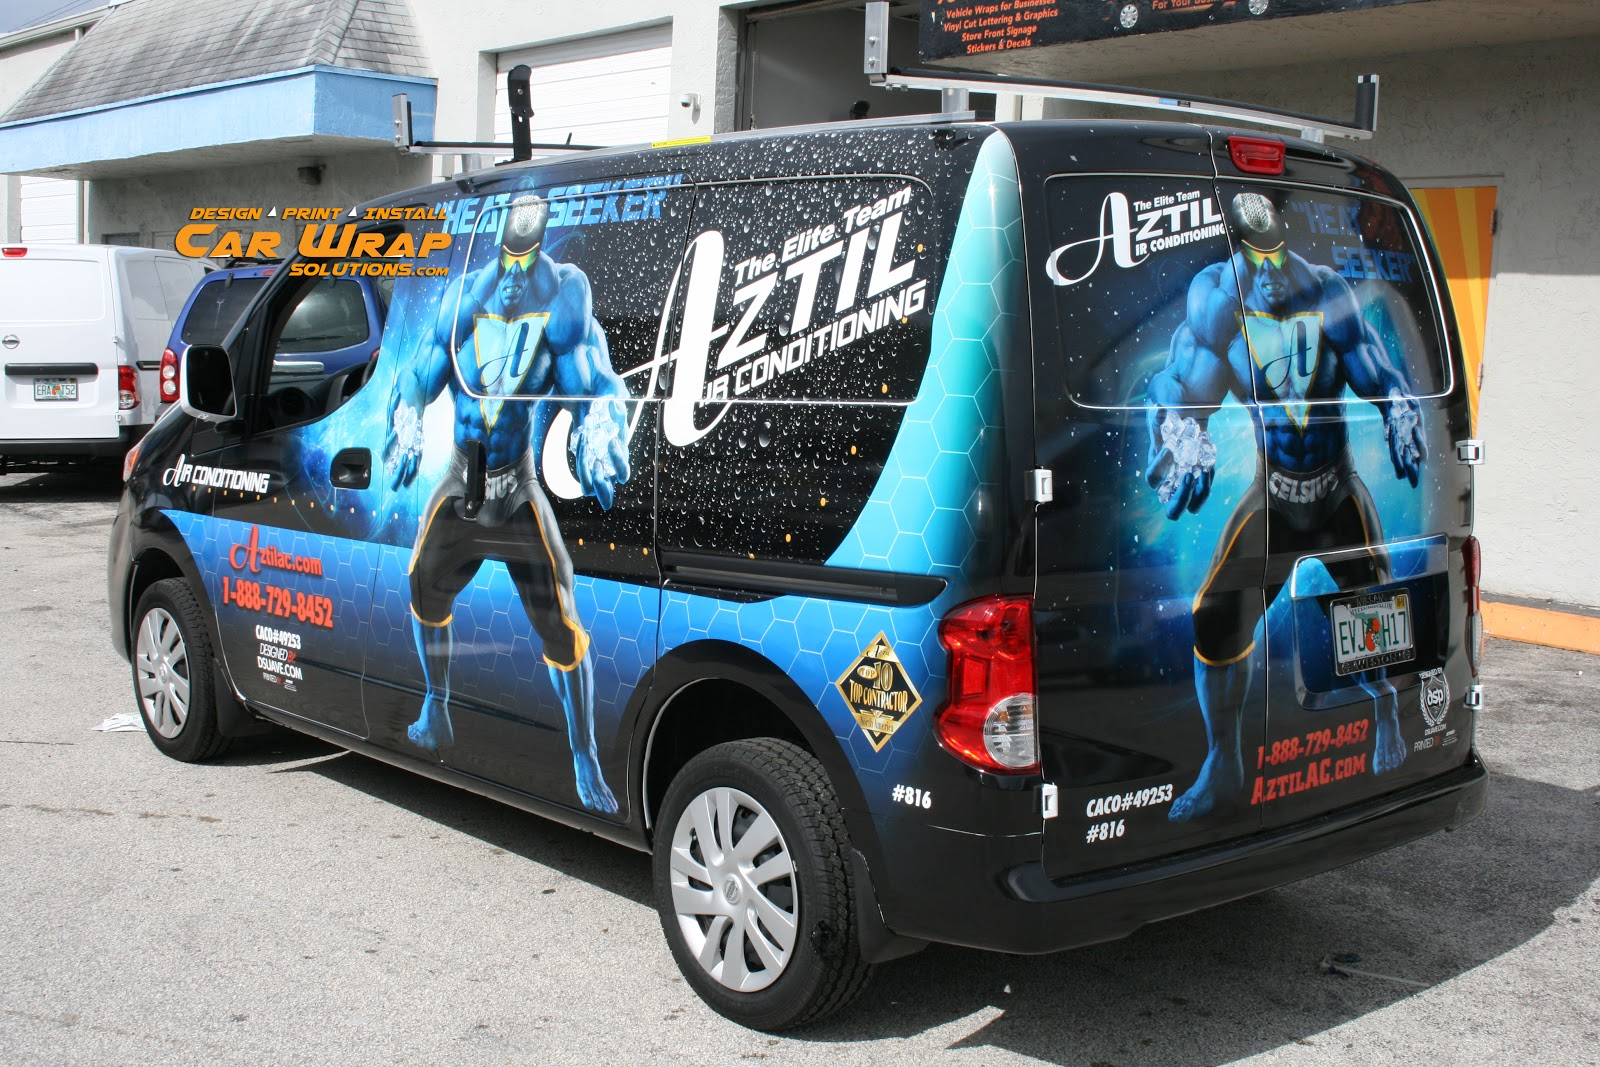 Air Conditioning Company Car Wrap Design West Palm Beach